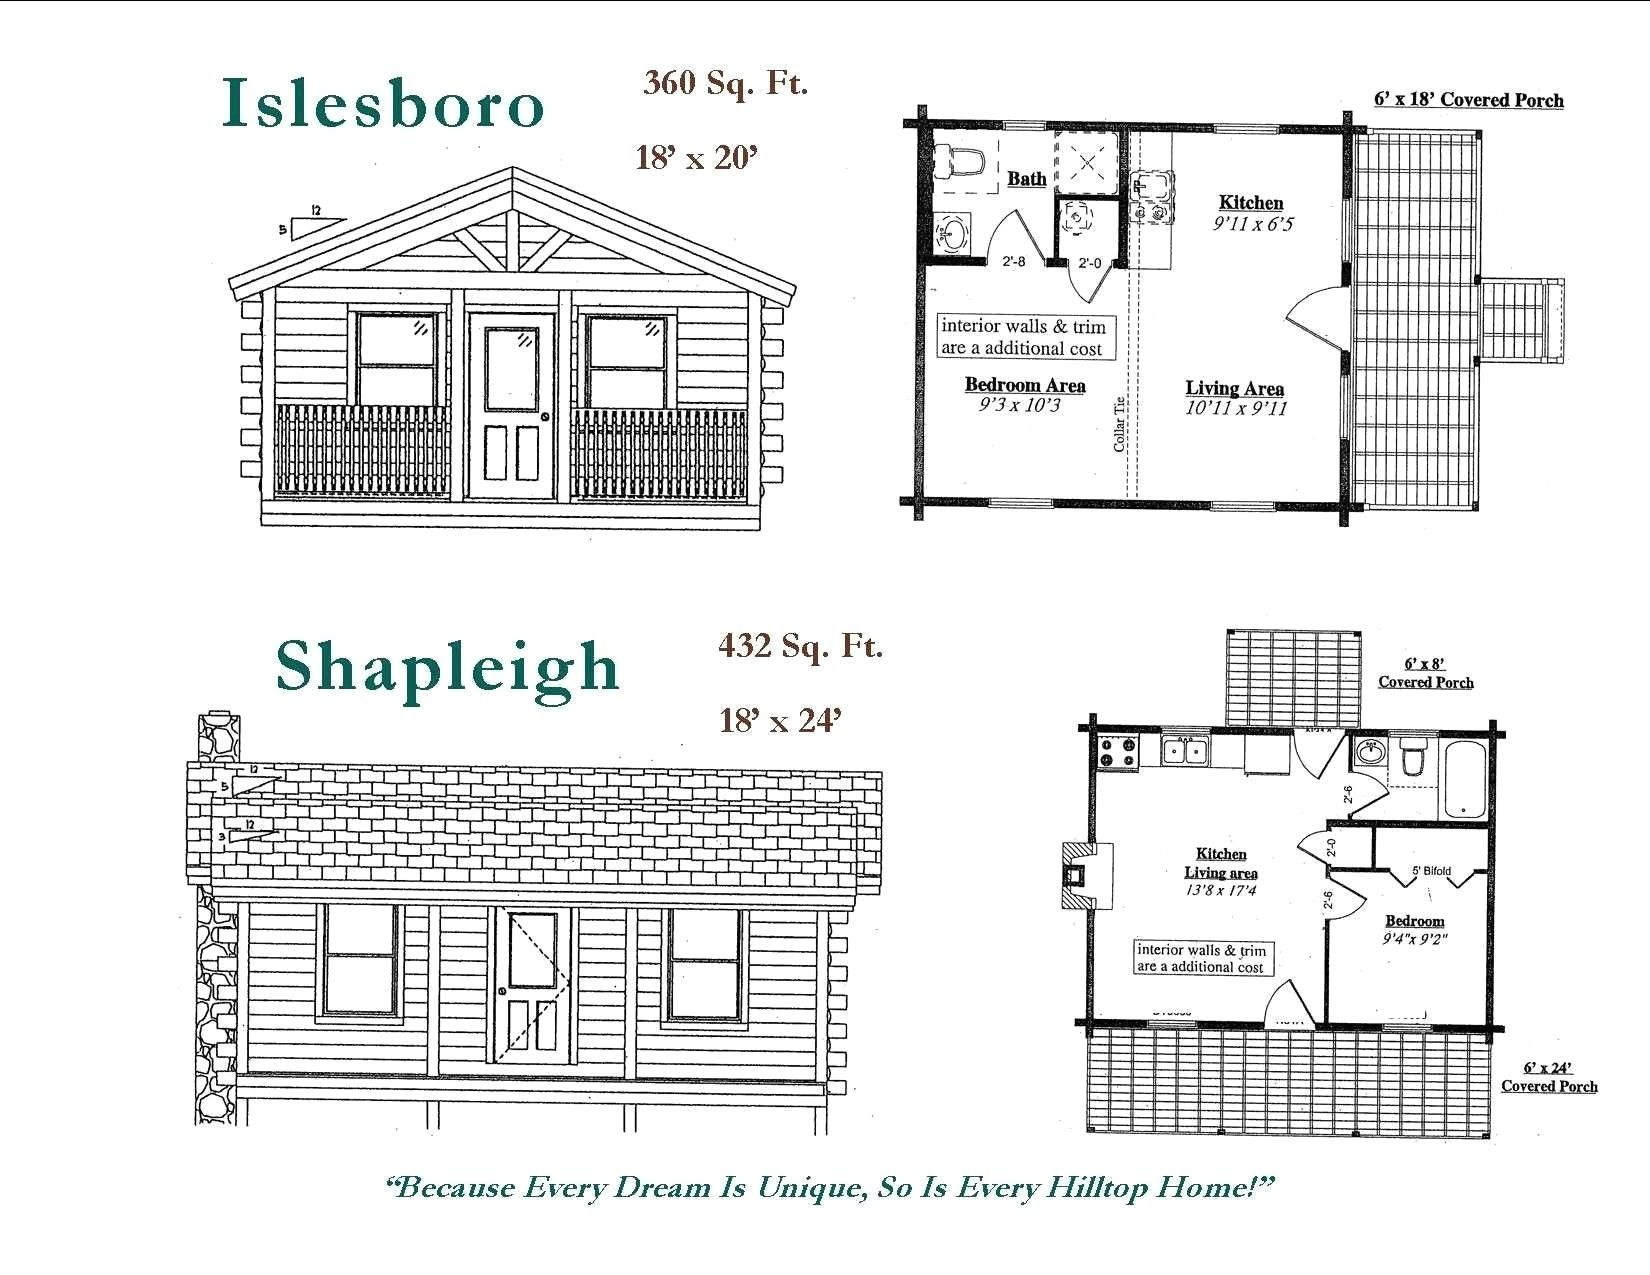 5 Bedroom House Plans Australia Luxury Modern Farmhouse Plans regarding Modern 5 Bedroom House Plans